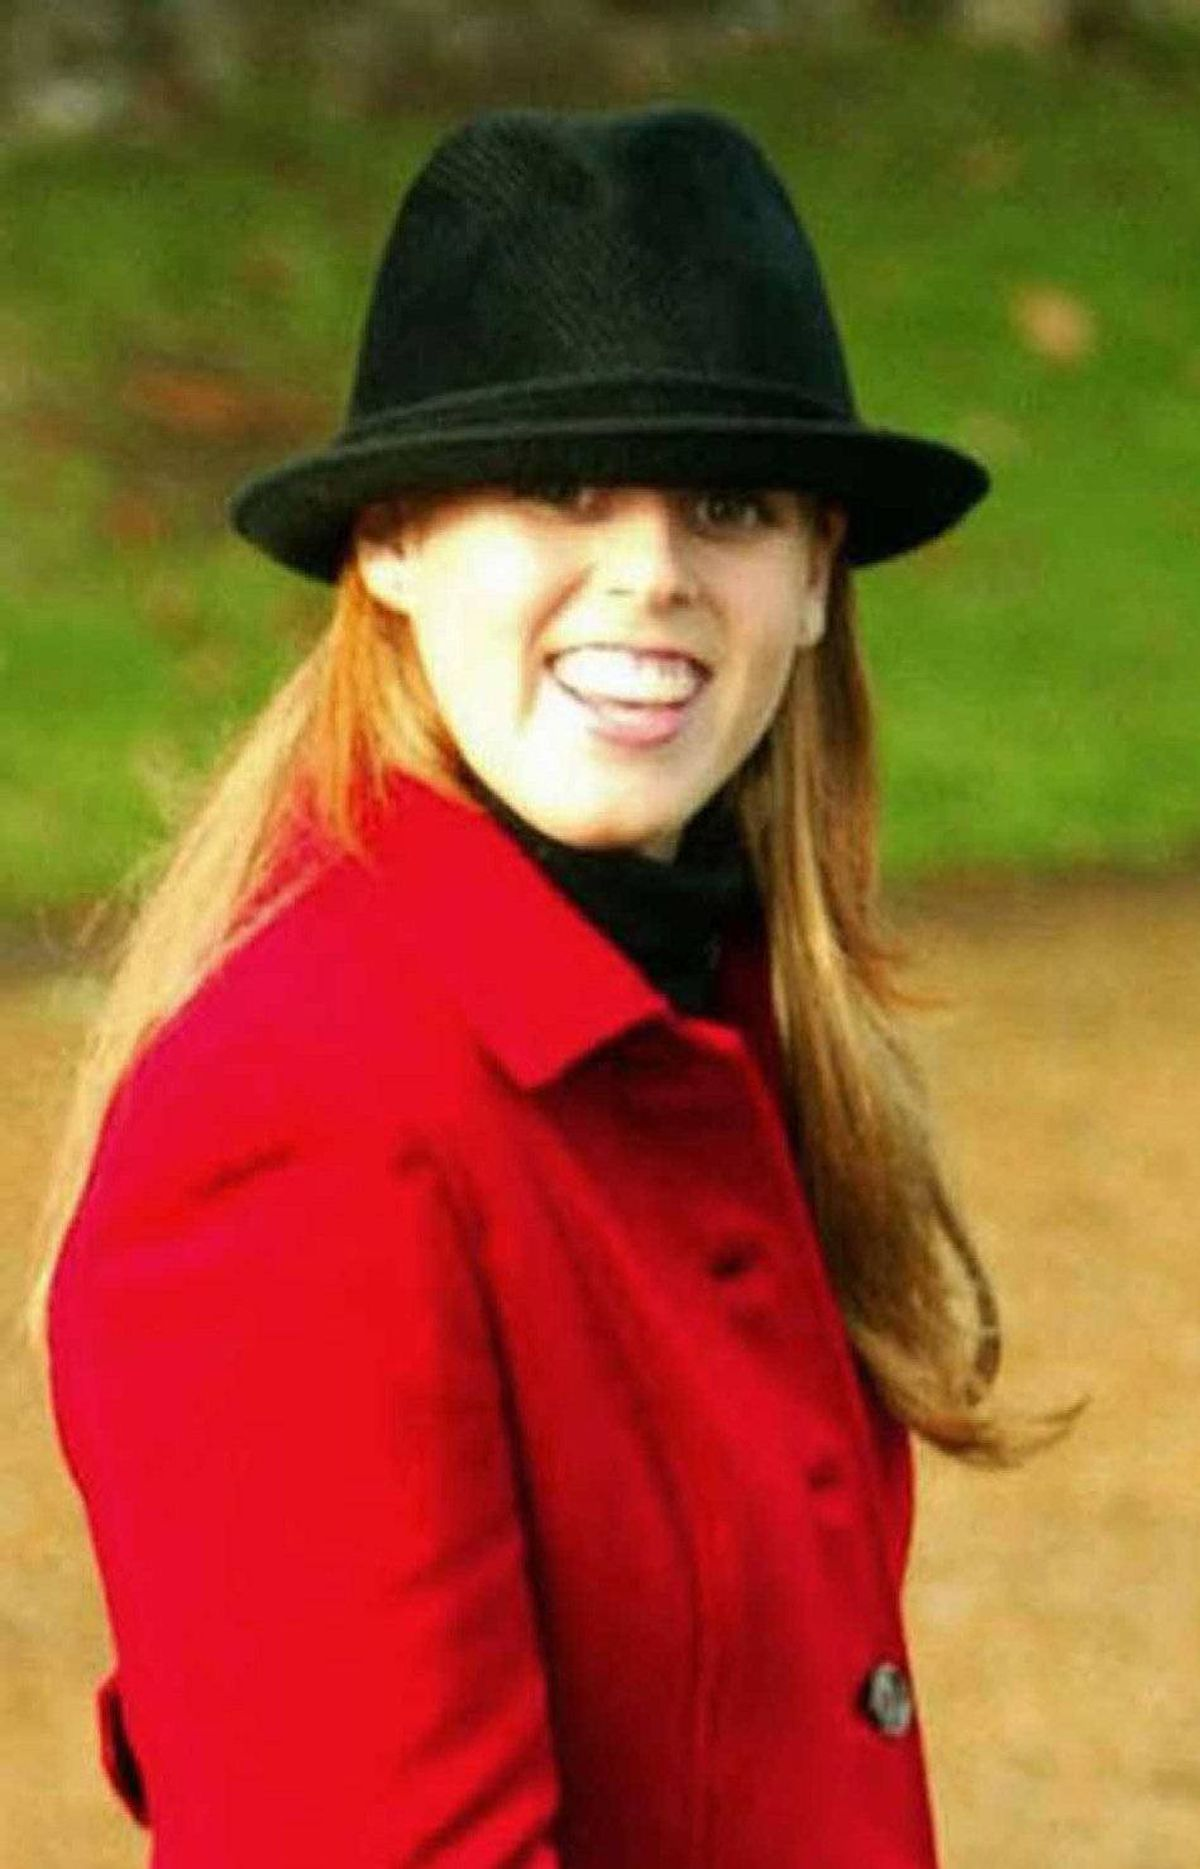 Princess Beatrice leave from St Mary Magdalene Church on the royal estate at Sandringham, Sandringham, Thursday, Dec, 25, 2003, following the Christmas Day service attended by members of the Royal Family.